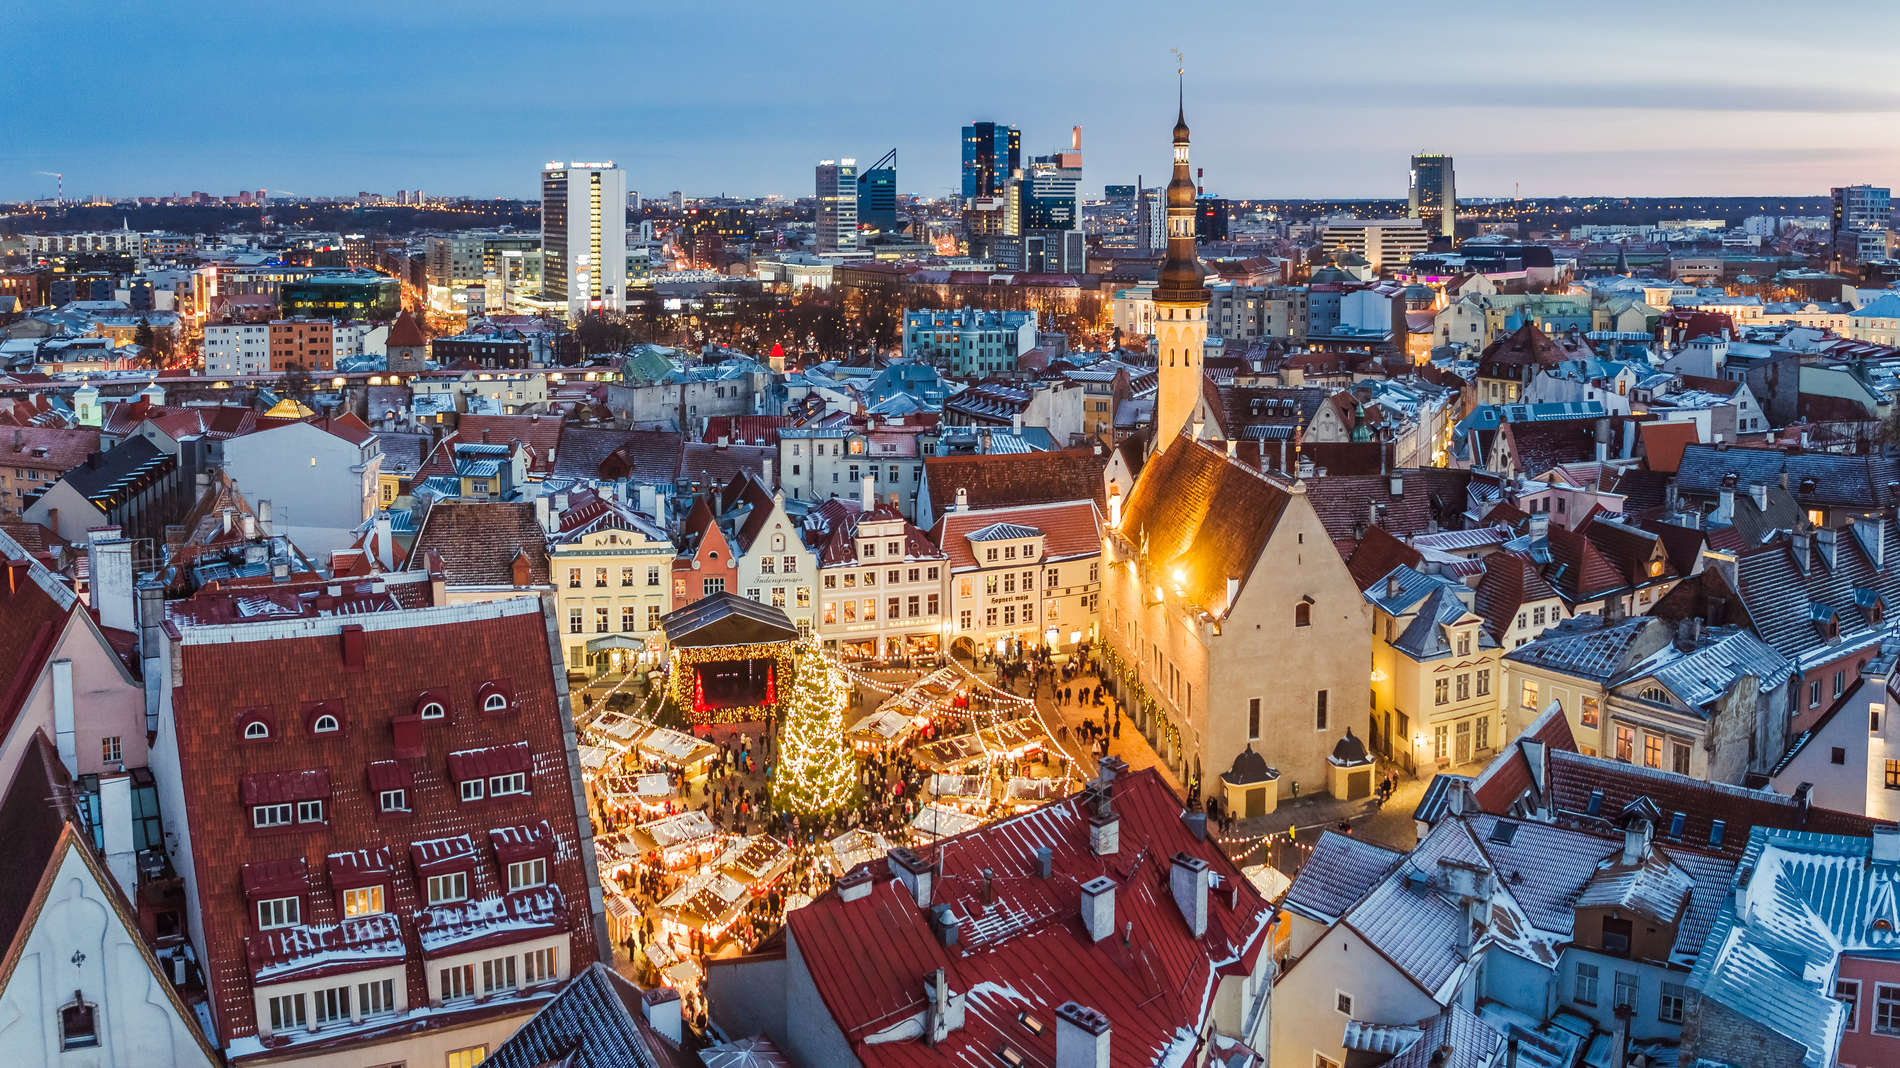 Christmas Market in Tallinn, Estonia. Photo by: Kaupo Kalda